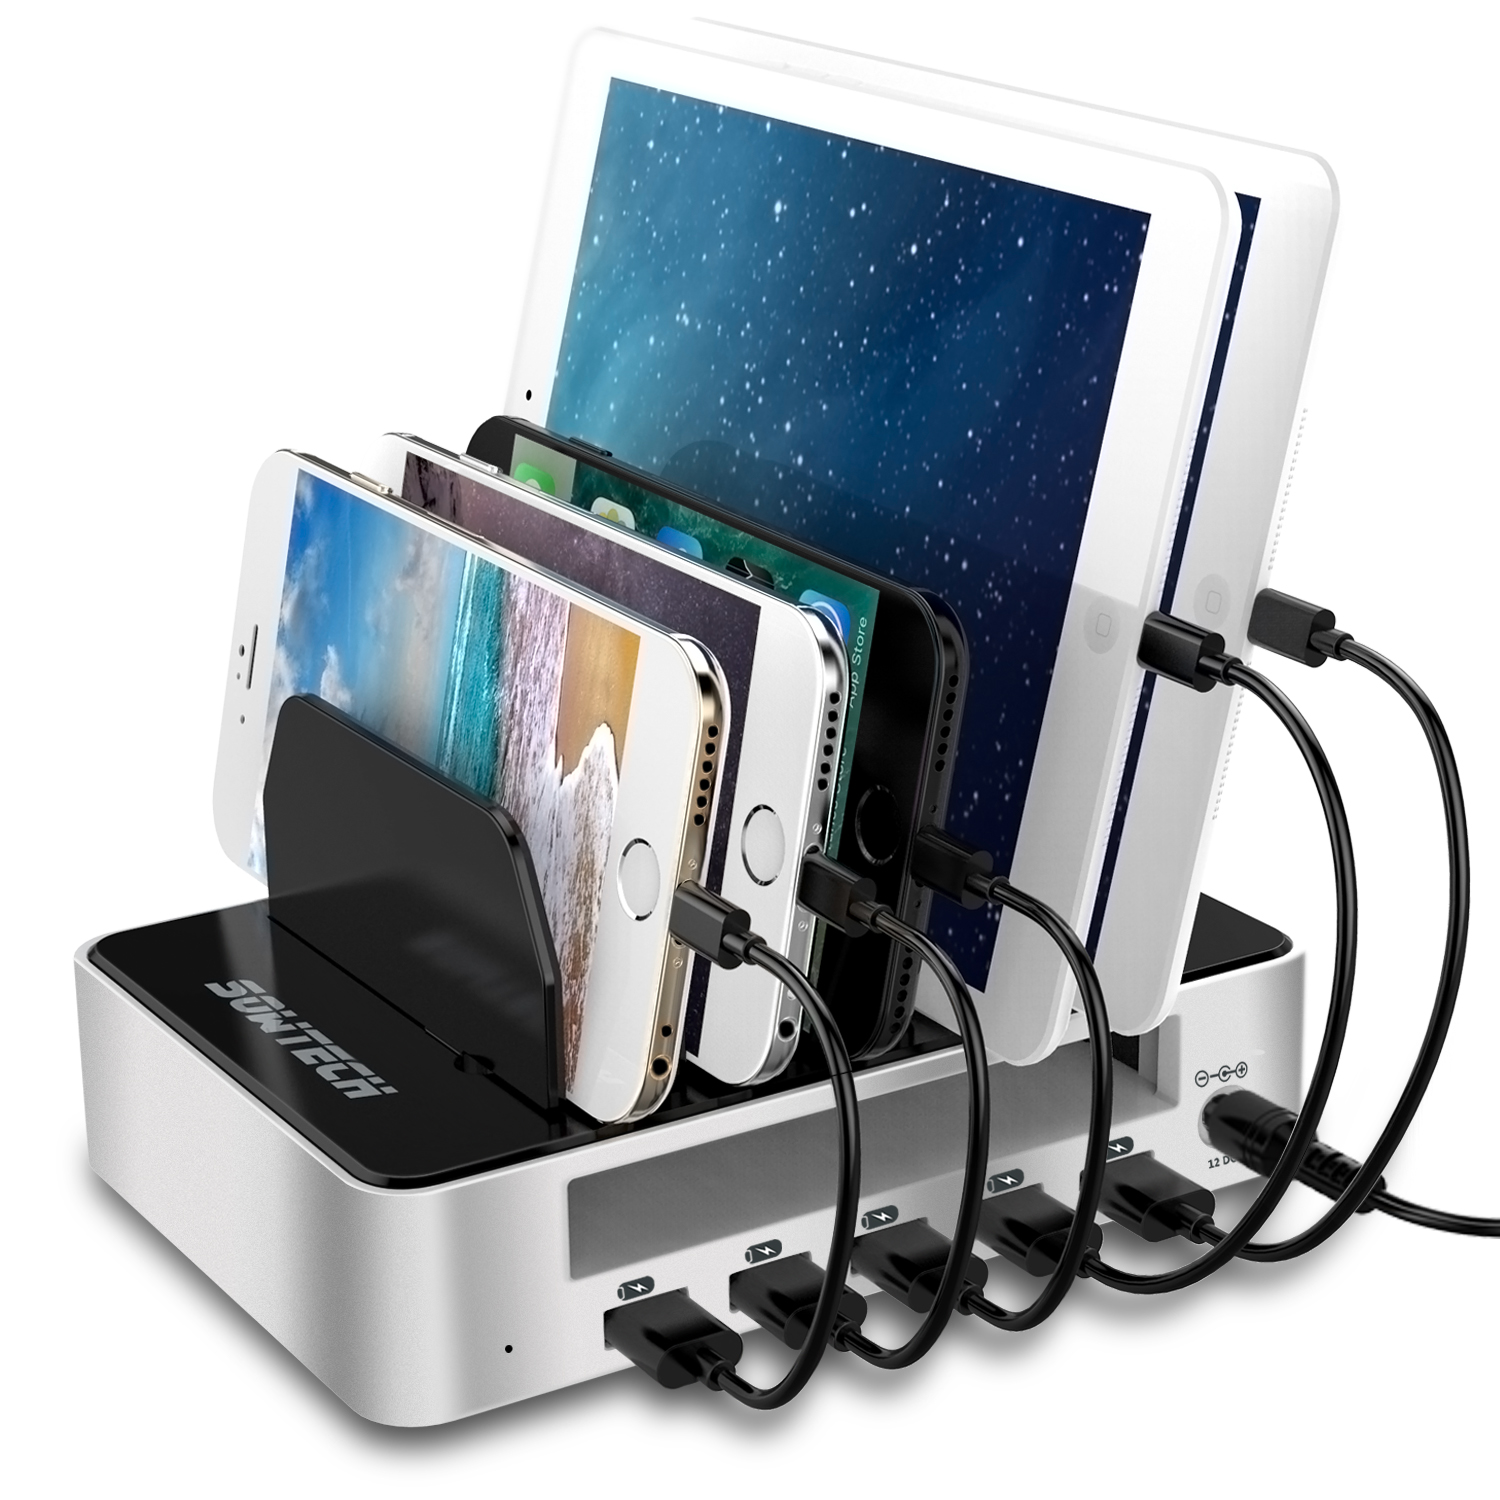 USB Charging Station SOWTECH 5-Port Charging Stand Docking Station Multi-Port USB Ports Detachable Baffles for iPhone/iPad/Smart Phone/Tablets